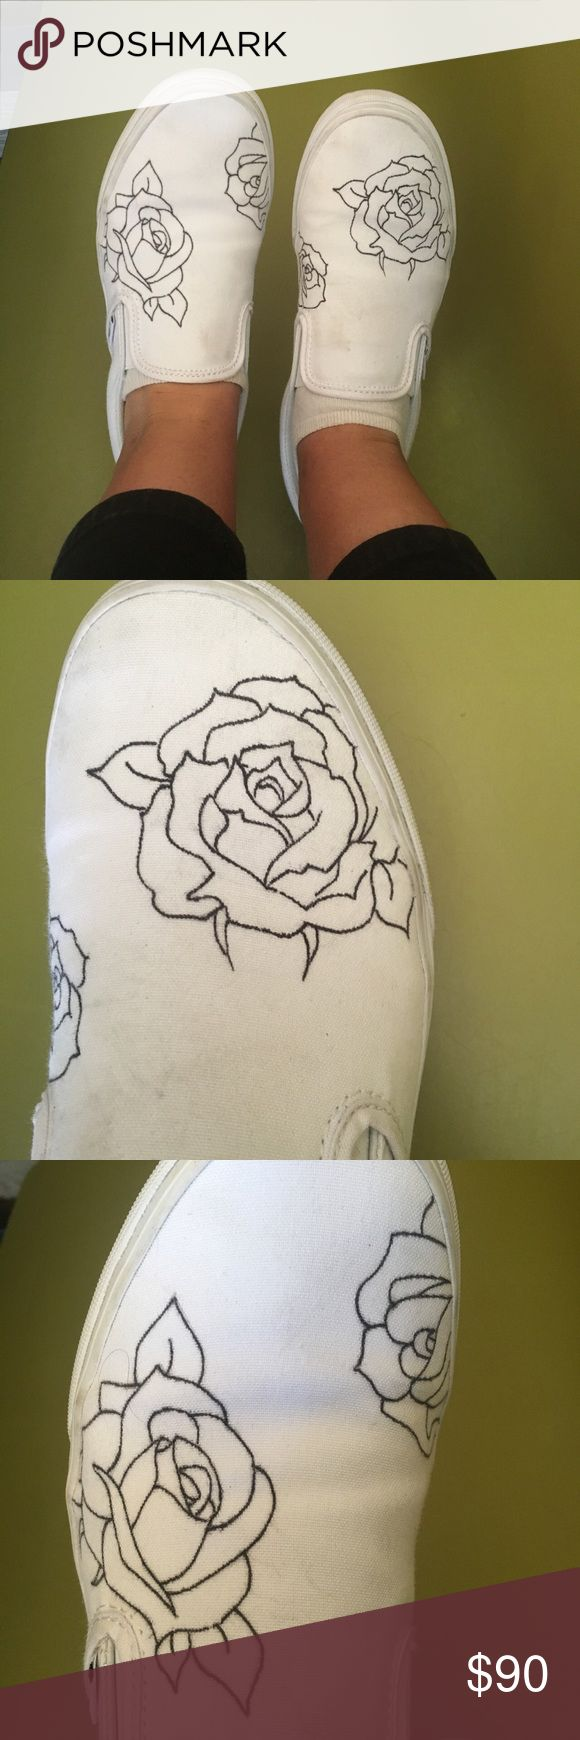 Custome Made White Rose Patterned Vans Im making custom made white vans with rose patterns! If you would like a pair please just send me your shoe size, also if you dont want rose patterns just send me a picture of the pattern that you would like. Vans Shoes Sneakers